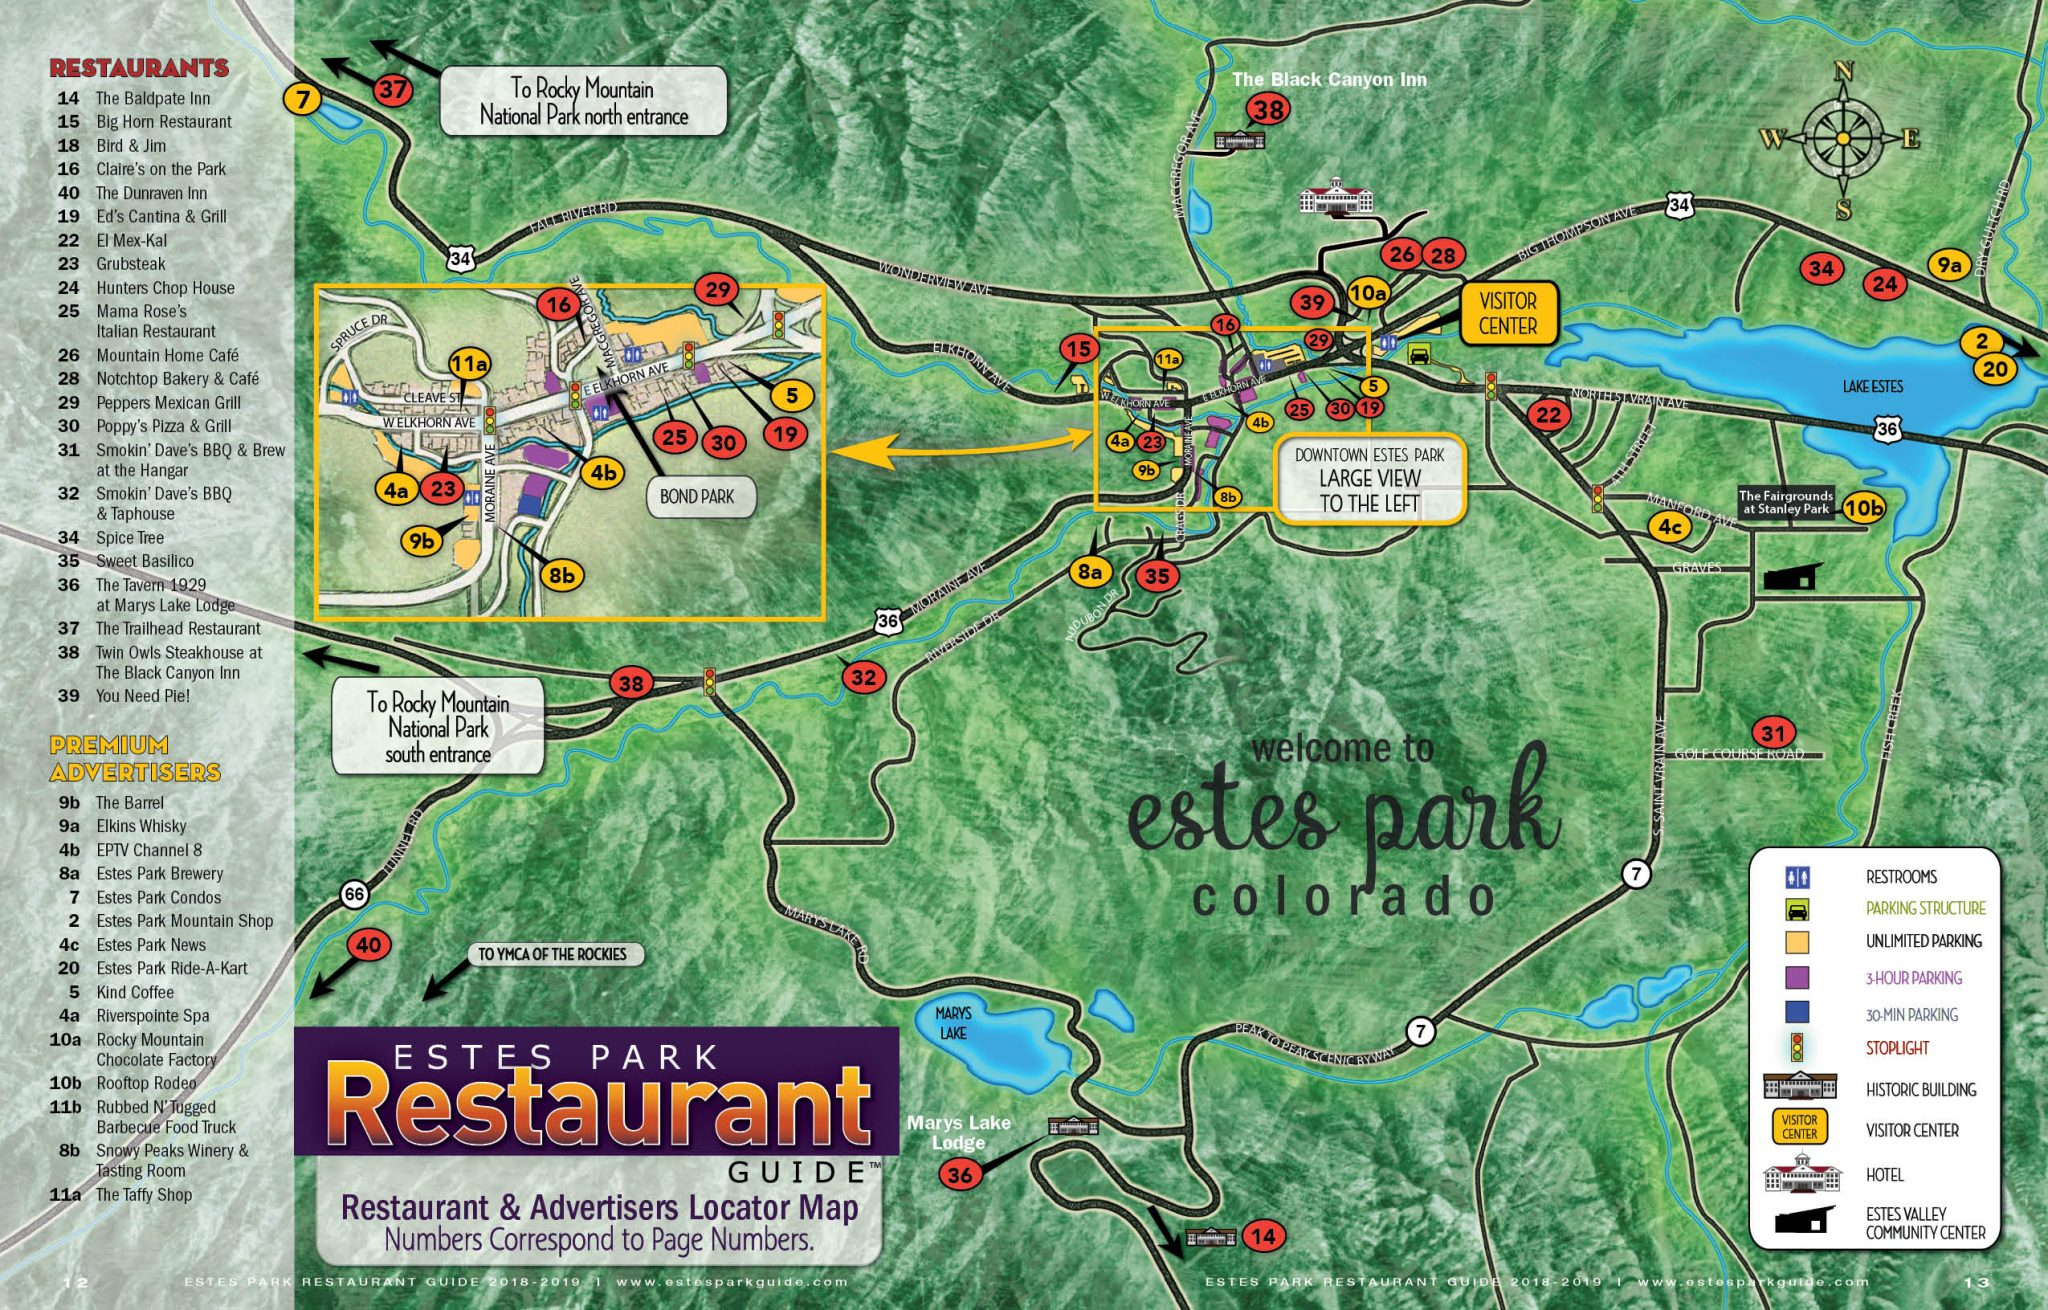 Estes Park Restaurant Map | Free GuestGuide Publications on food delivery nearby, attractions nearby, parks nearby, japanese gardens nearby, cafes nearby,